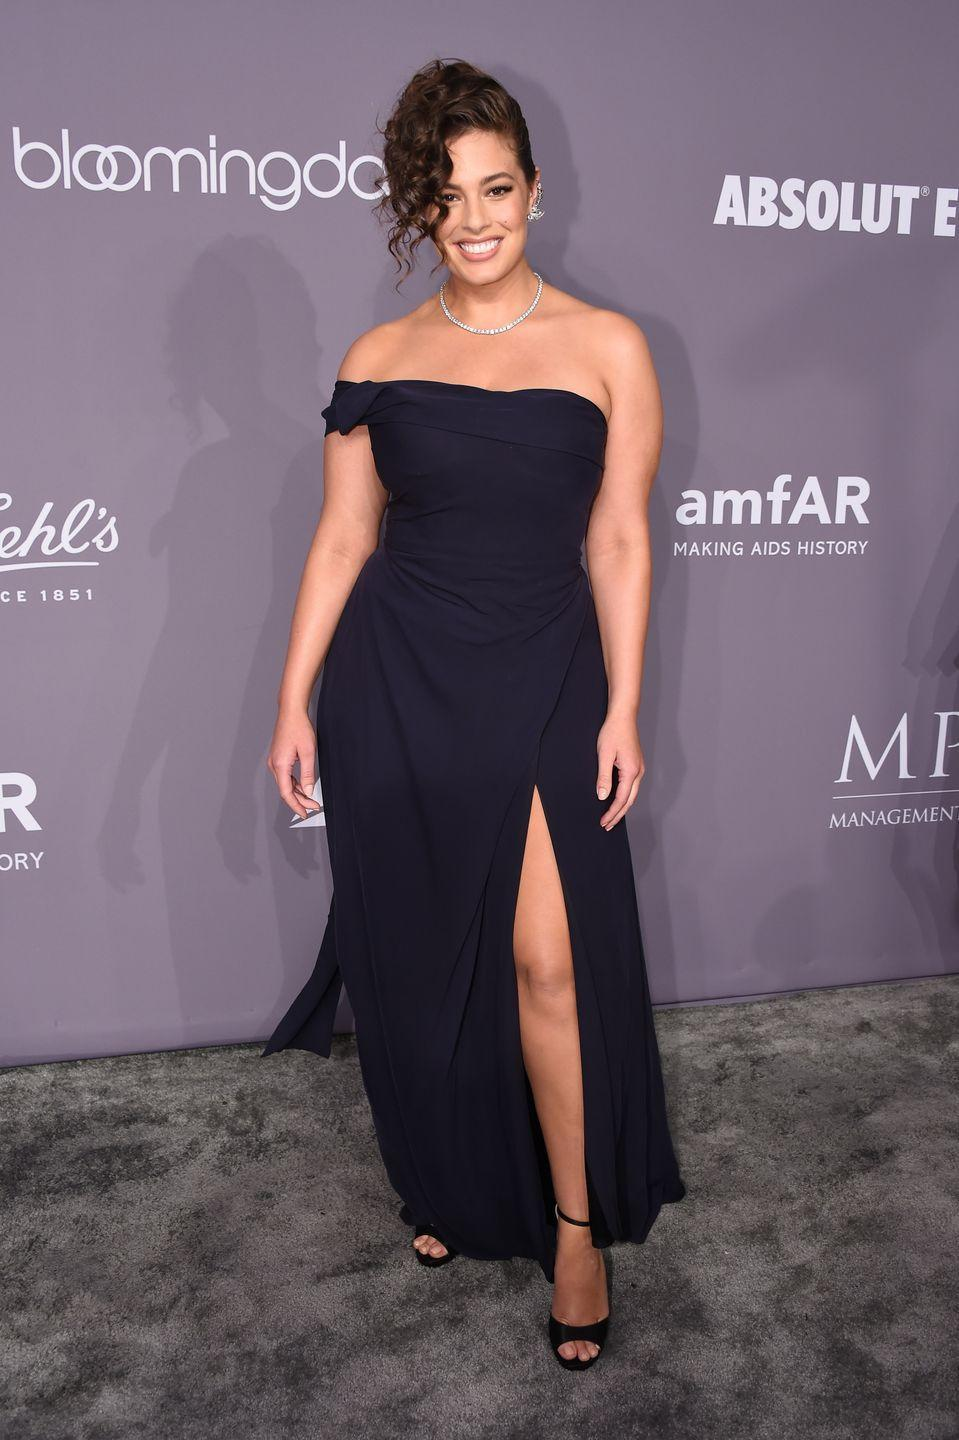 <p>Attending the amFAR Gala in New York: Step aside Angelina because Ashley Graham is here to take your thigh-high split dress crown. Looking stunning in her strapless navy gown, Ashley accessorised with some seriously '80s inspired curls. </p>